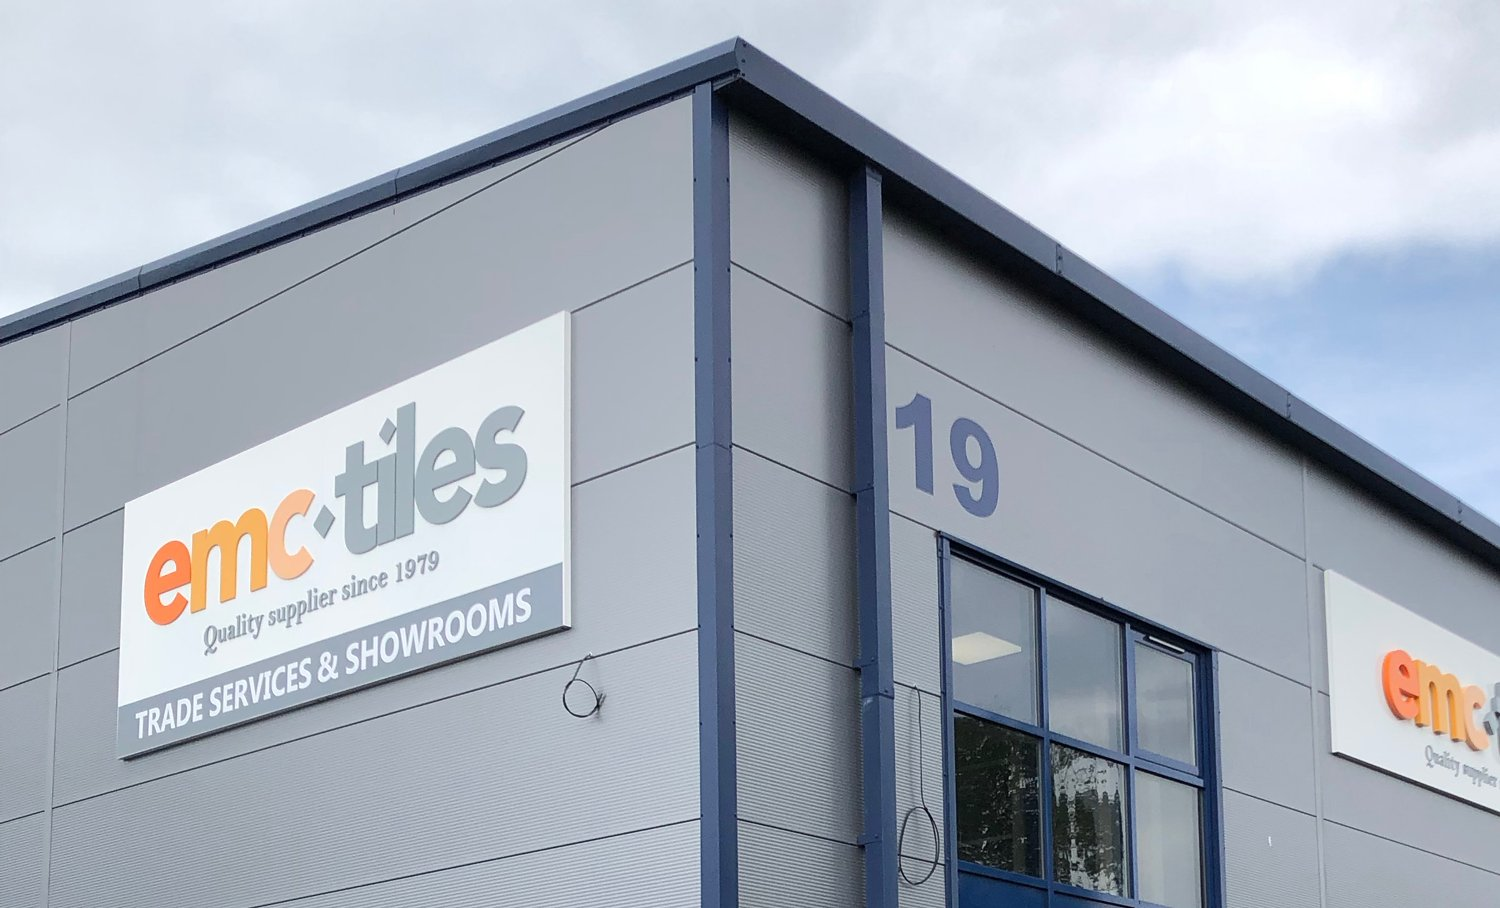 EMC Tiles expands and becomes latest name in Eagle Park success